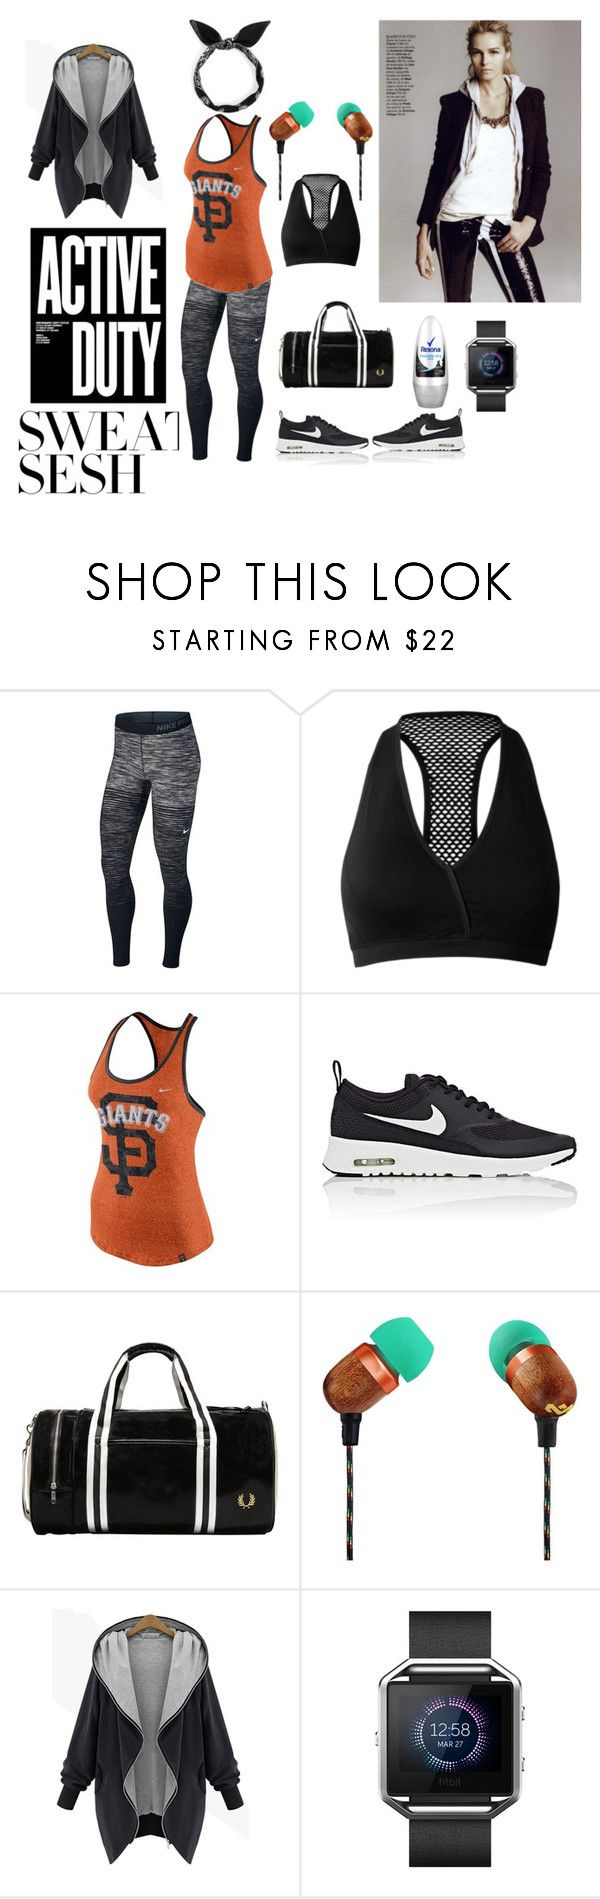 active duty by paisleyvelvetandlace on Polyvore featuring NIKE, John Lewis, Fitbit and The House of Marley